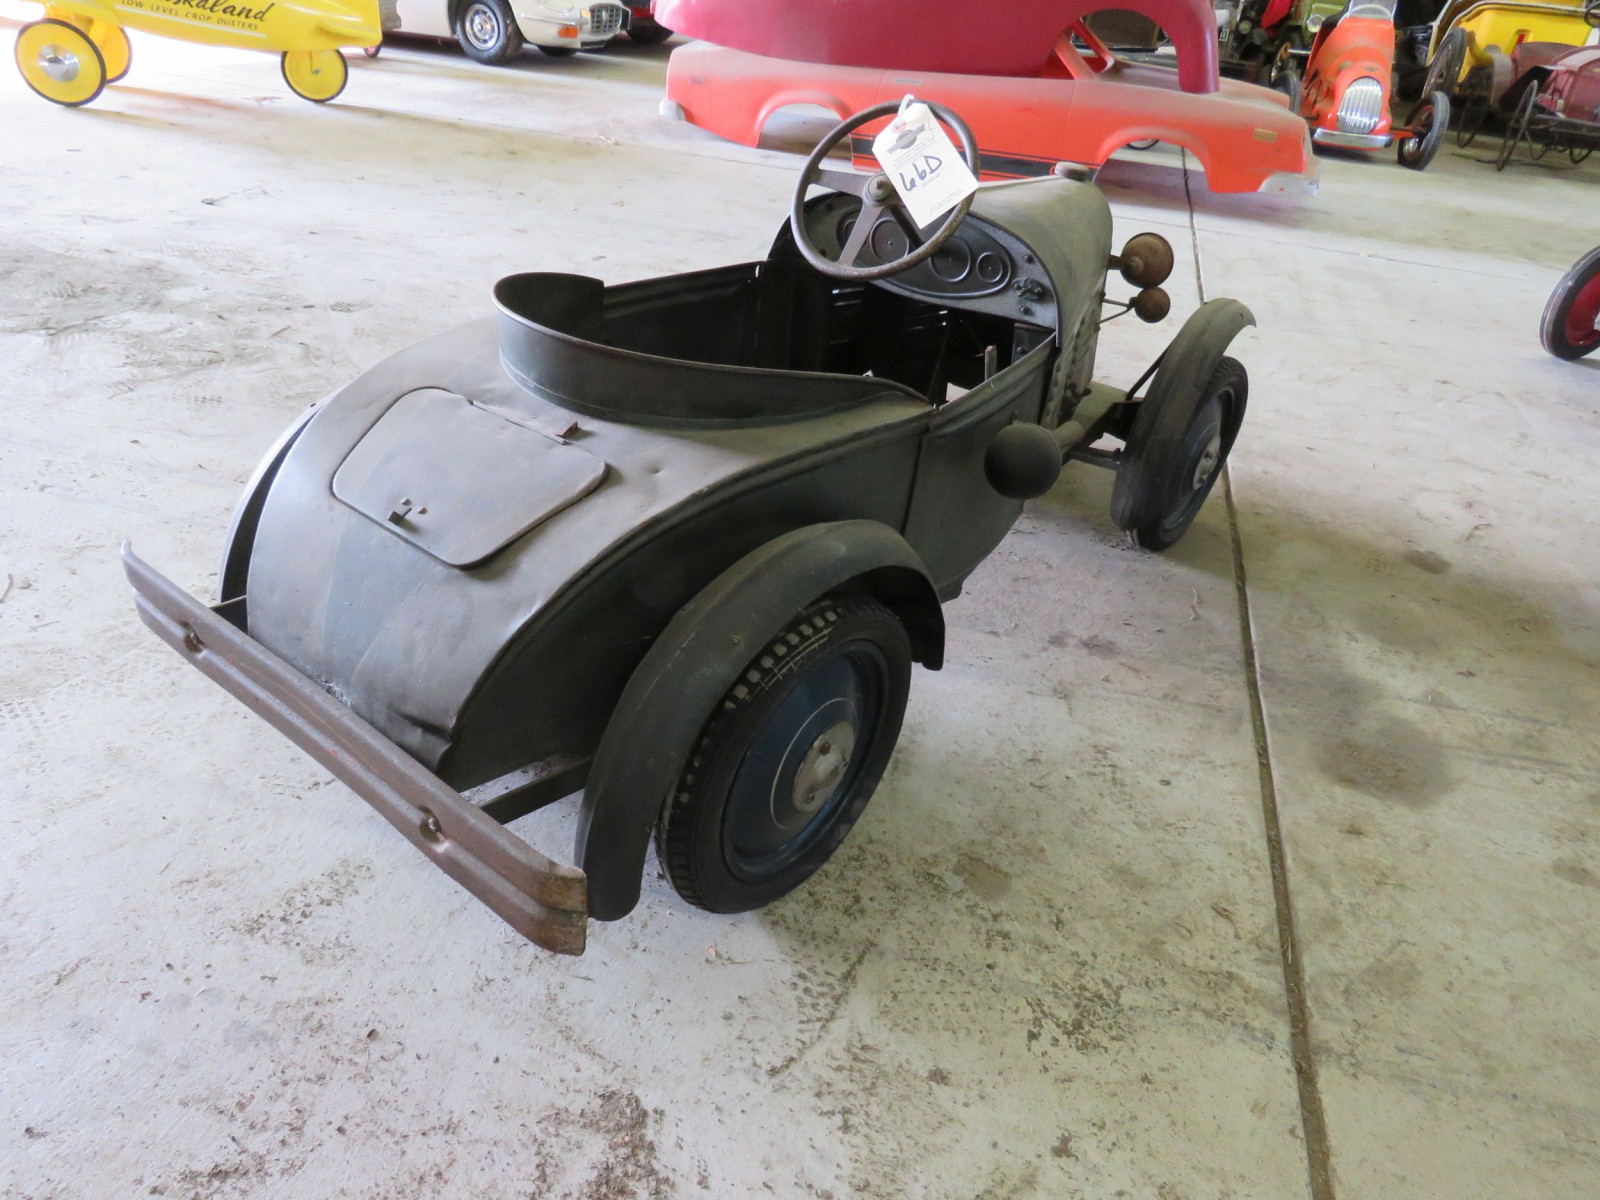 Vintage Regal Cycles Roadster Pedal Car - Image 7